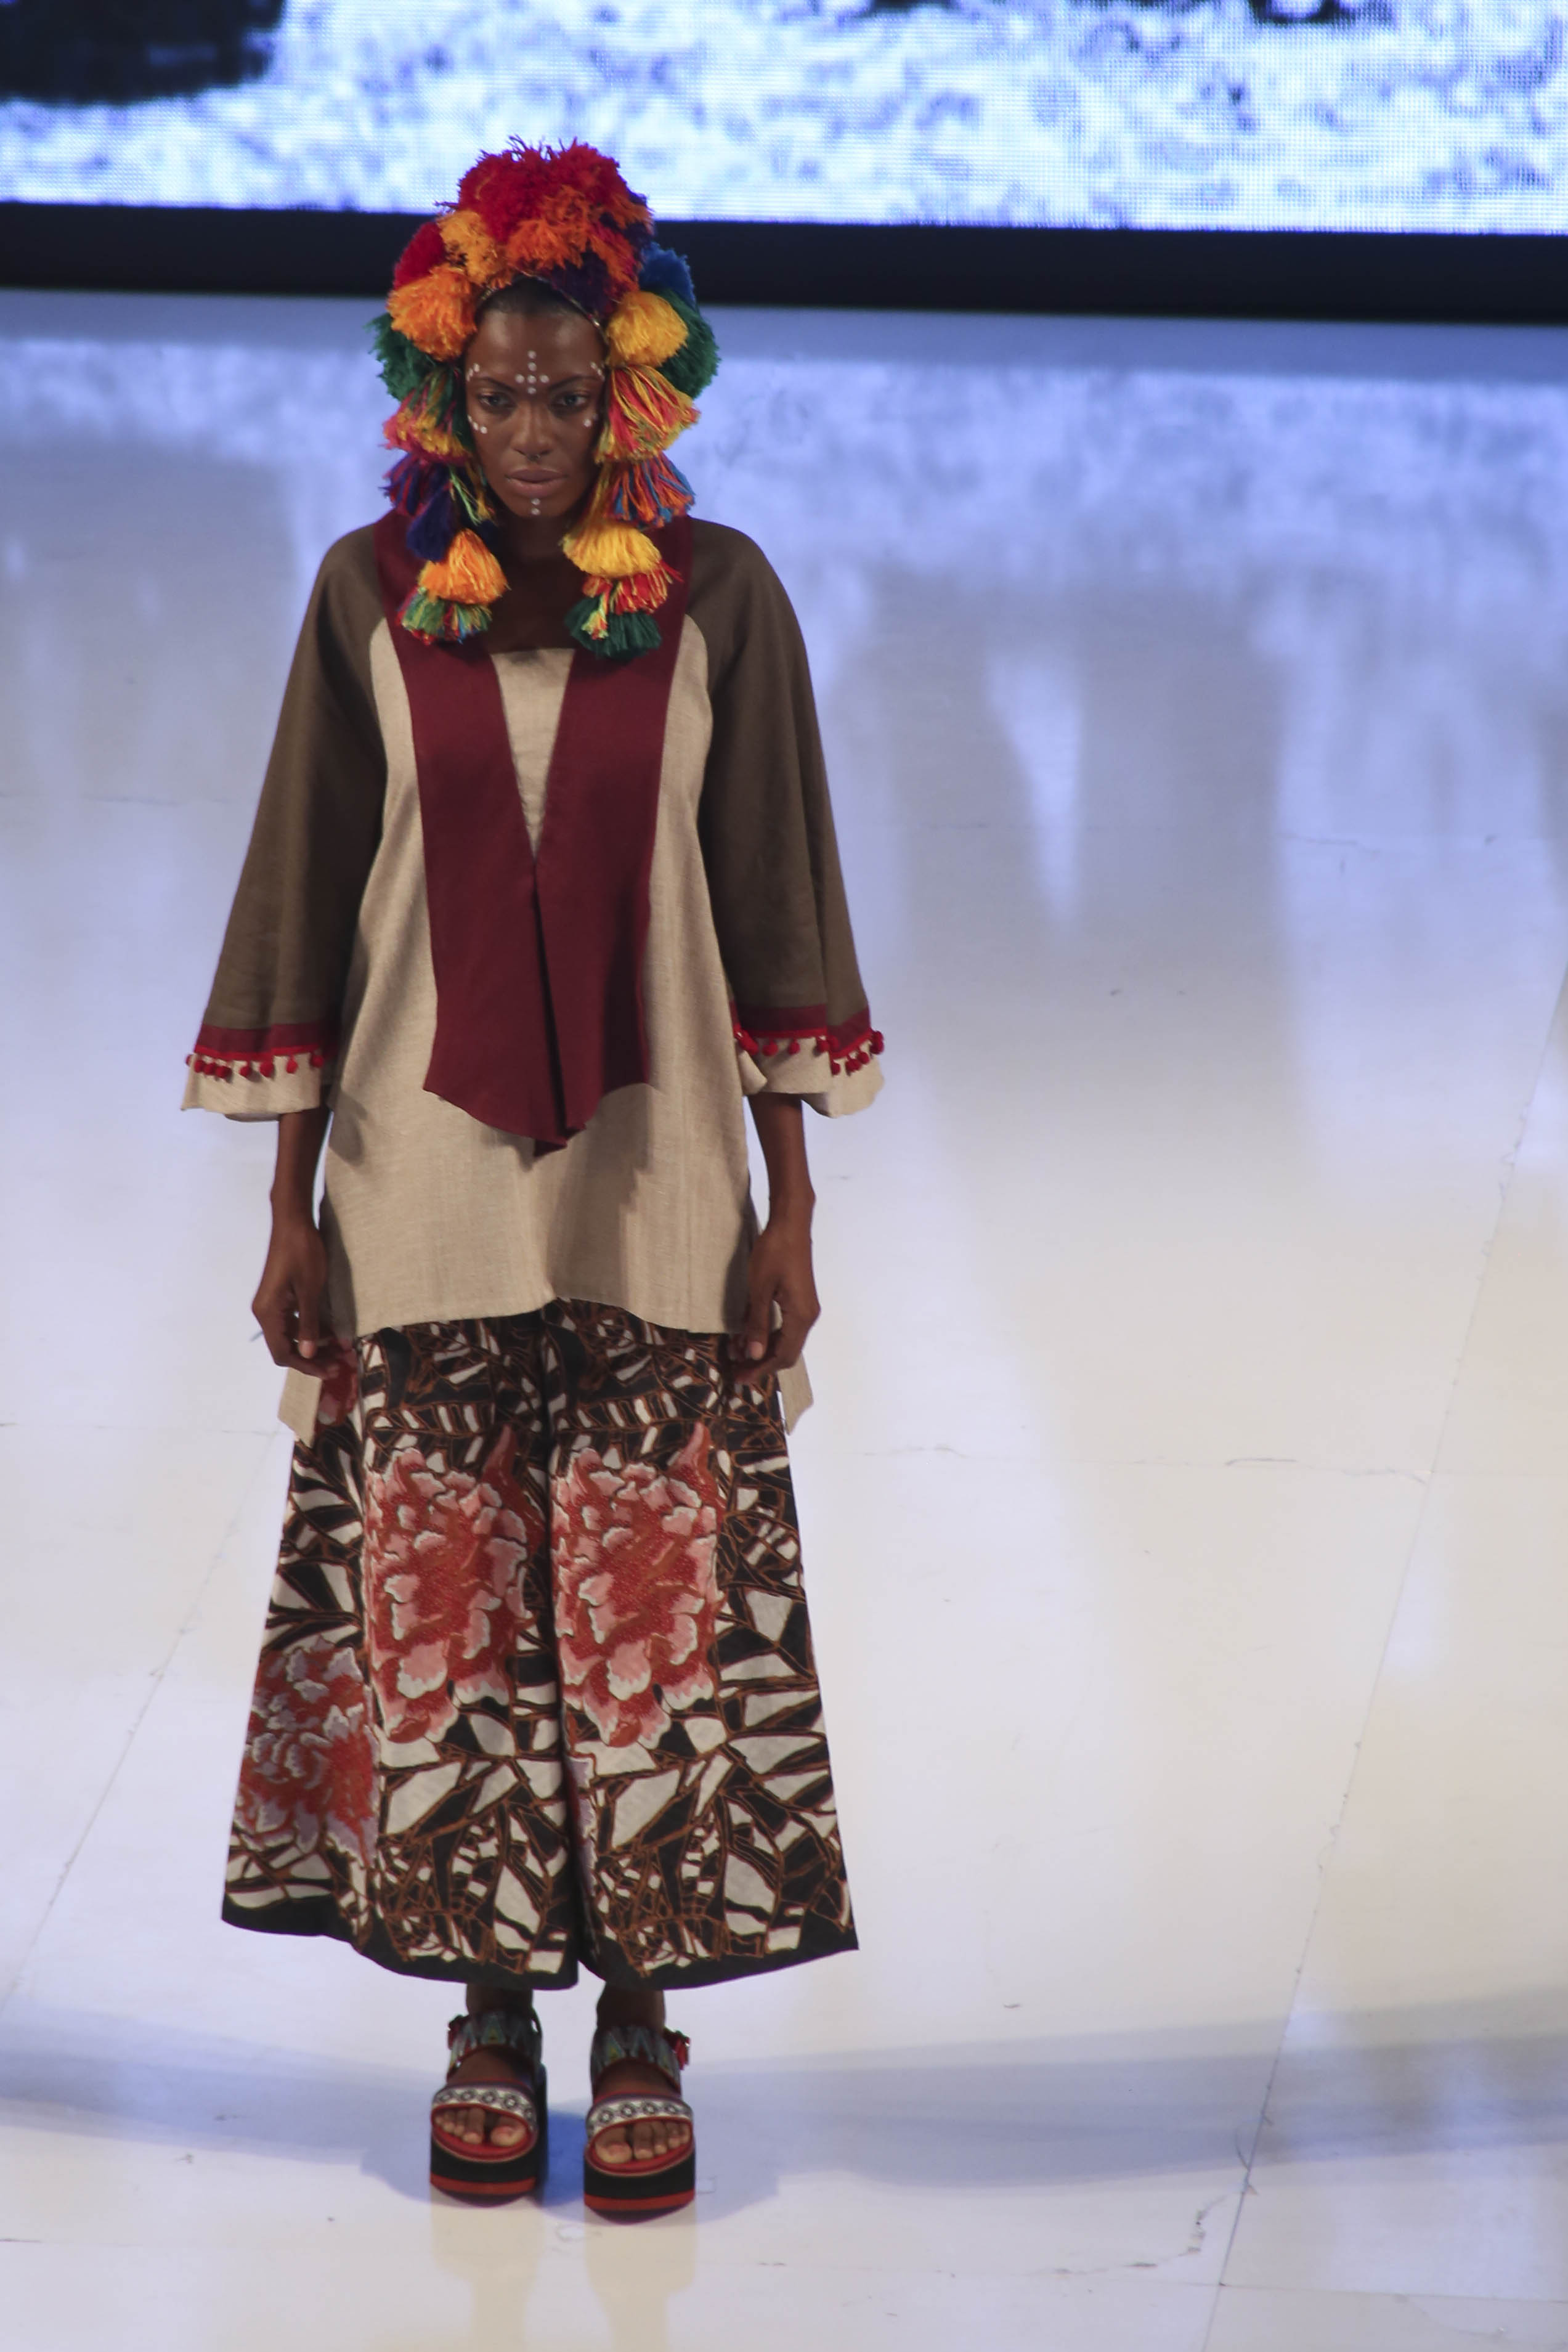 The collection focused on bold prints and colors from traditional Indonesian patterns.